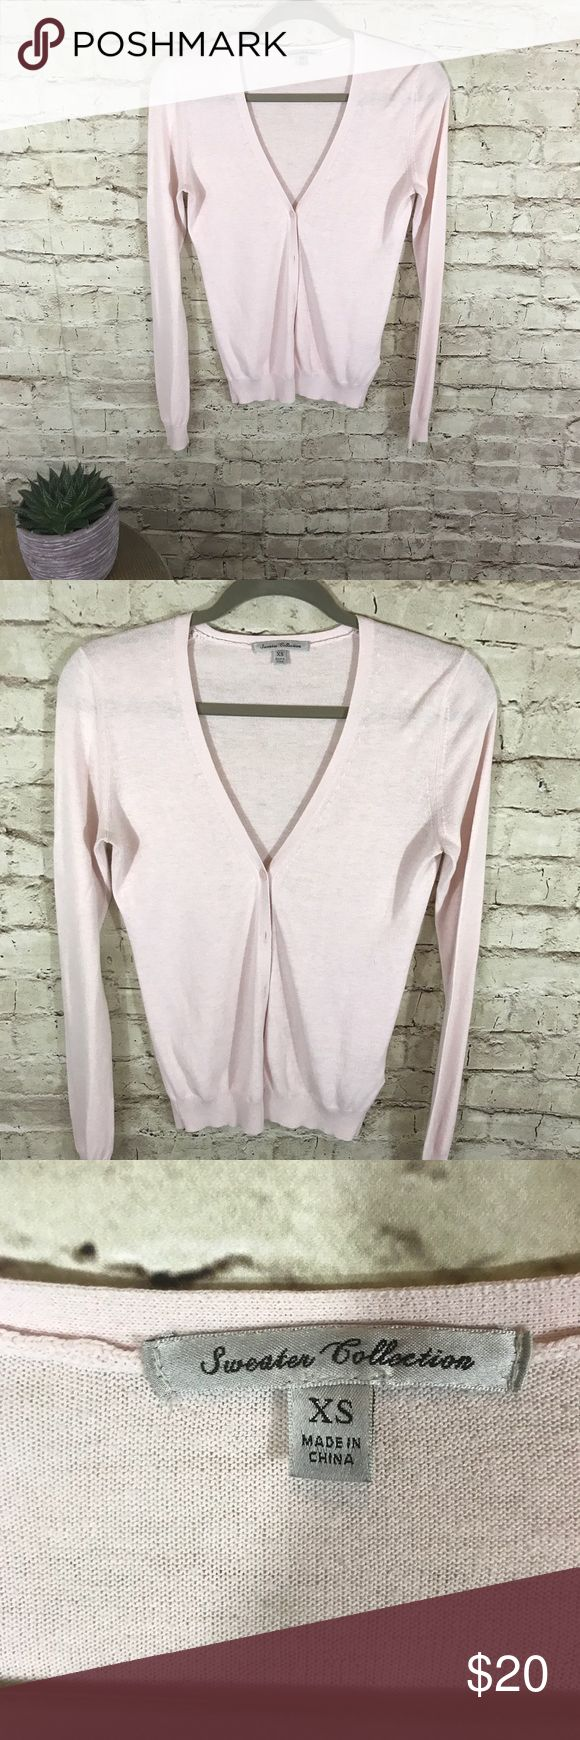 Uniqlo cardigan button down Very light pink cardigan. Buttons down.good condition. Size XS. Sweater collection by uniqlo Uniqlo Sweaters Cardigans